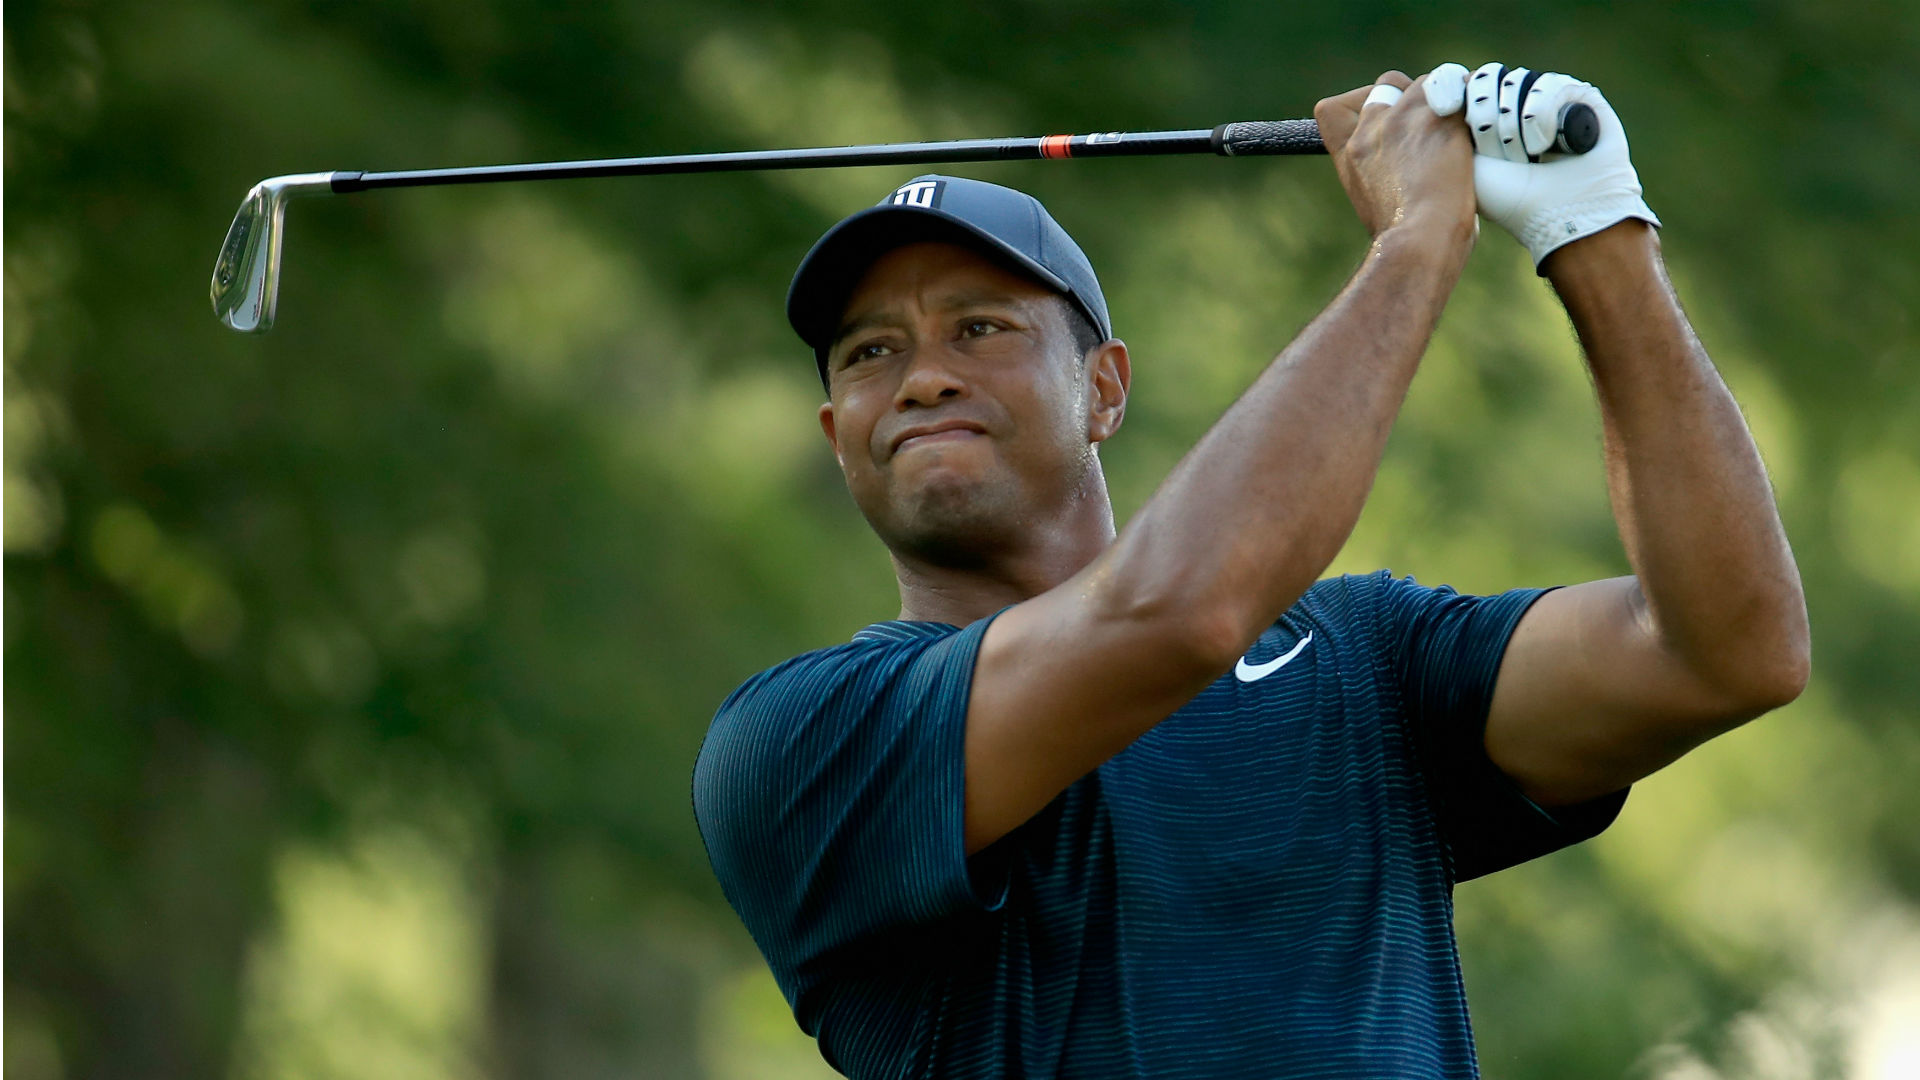 Putts won't drop, but Woods moves up the board at PGA anyway